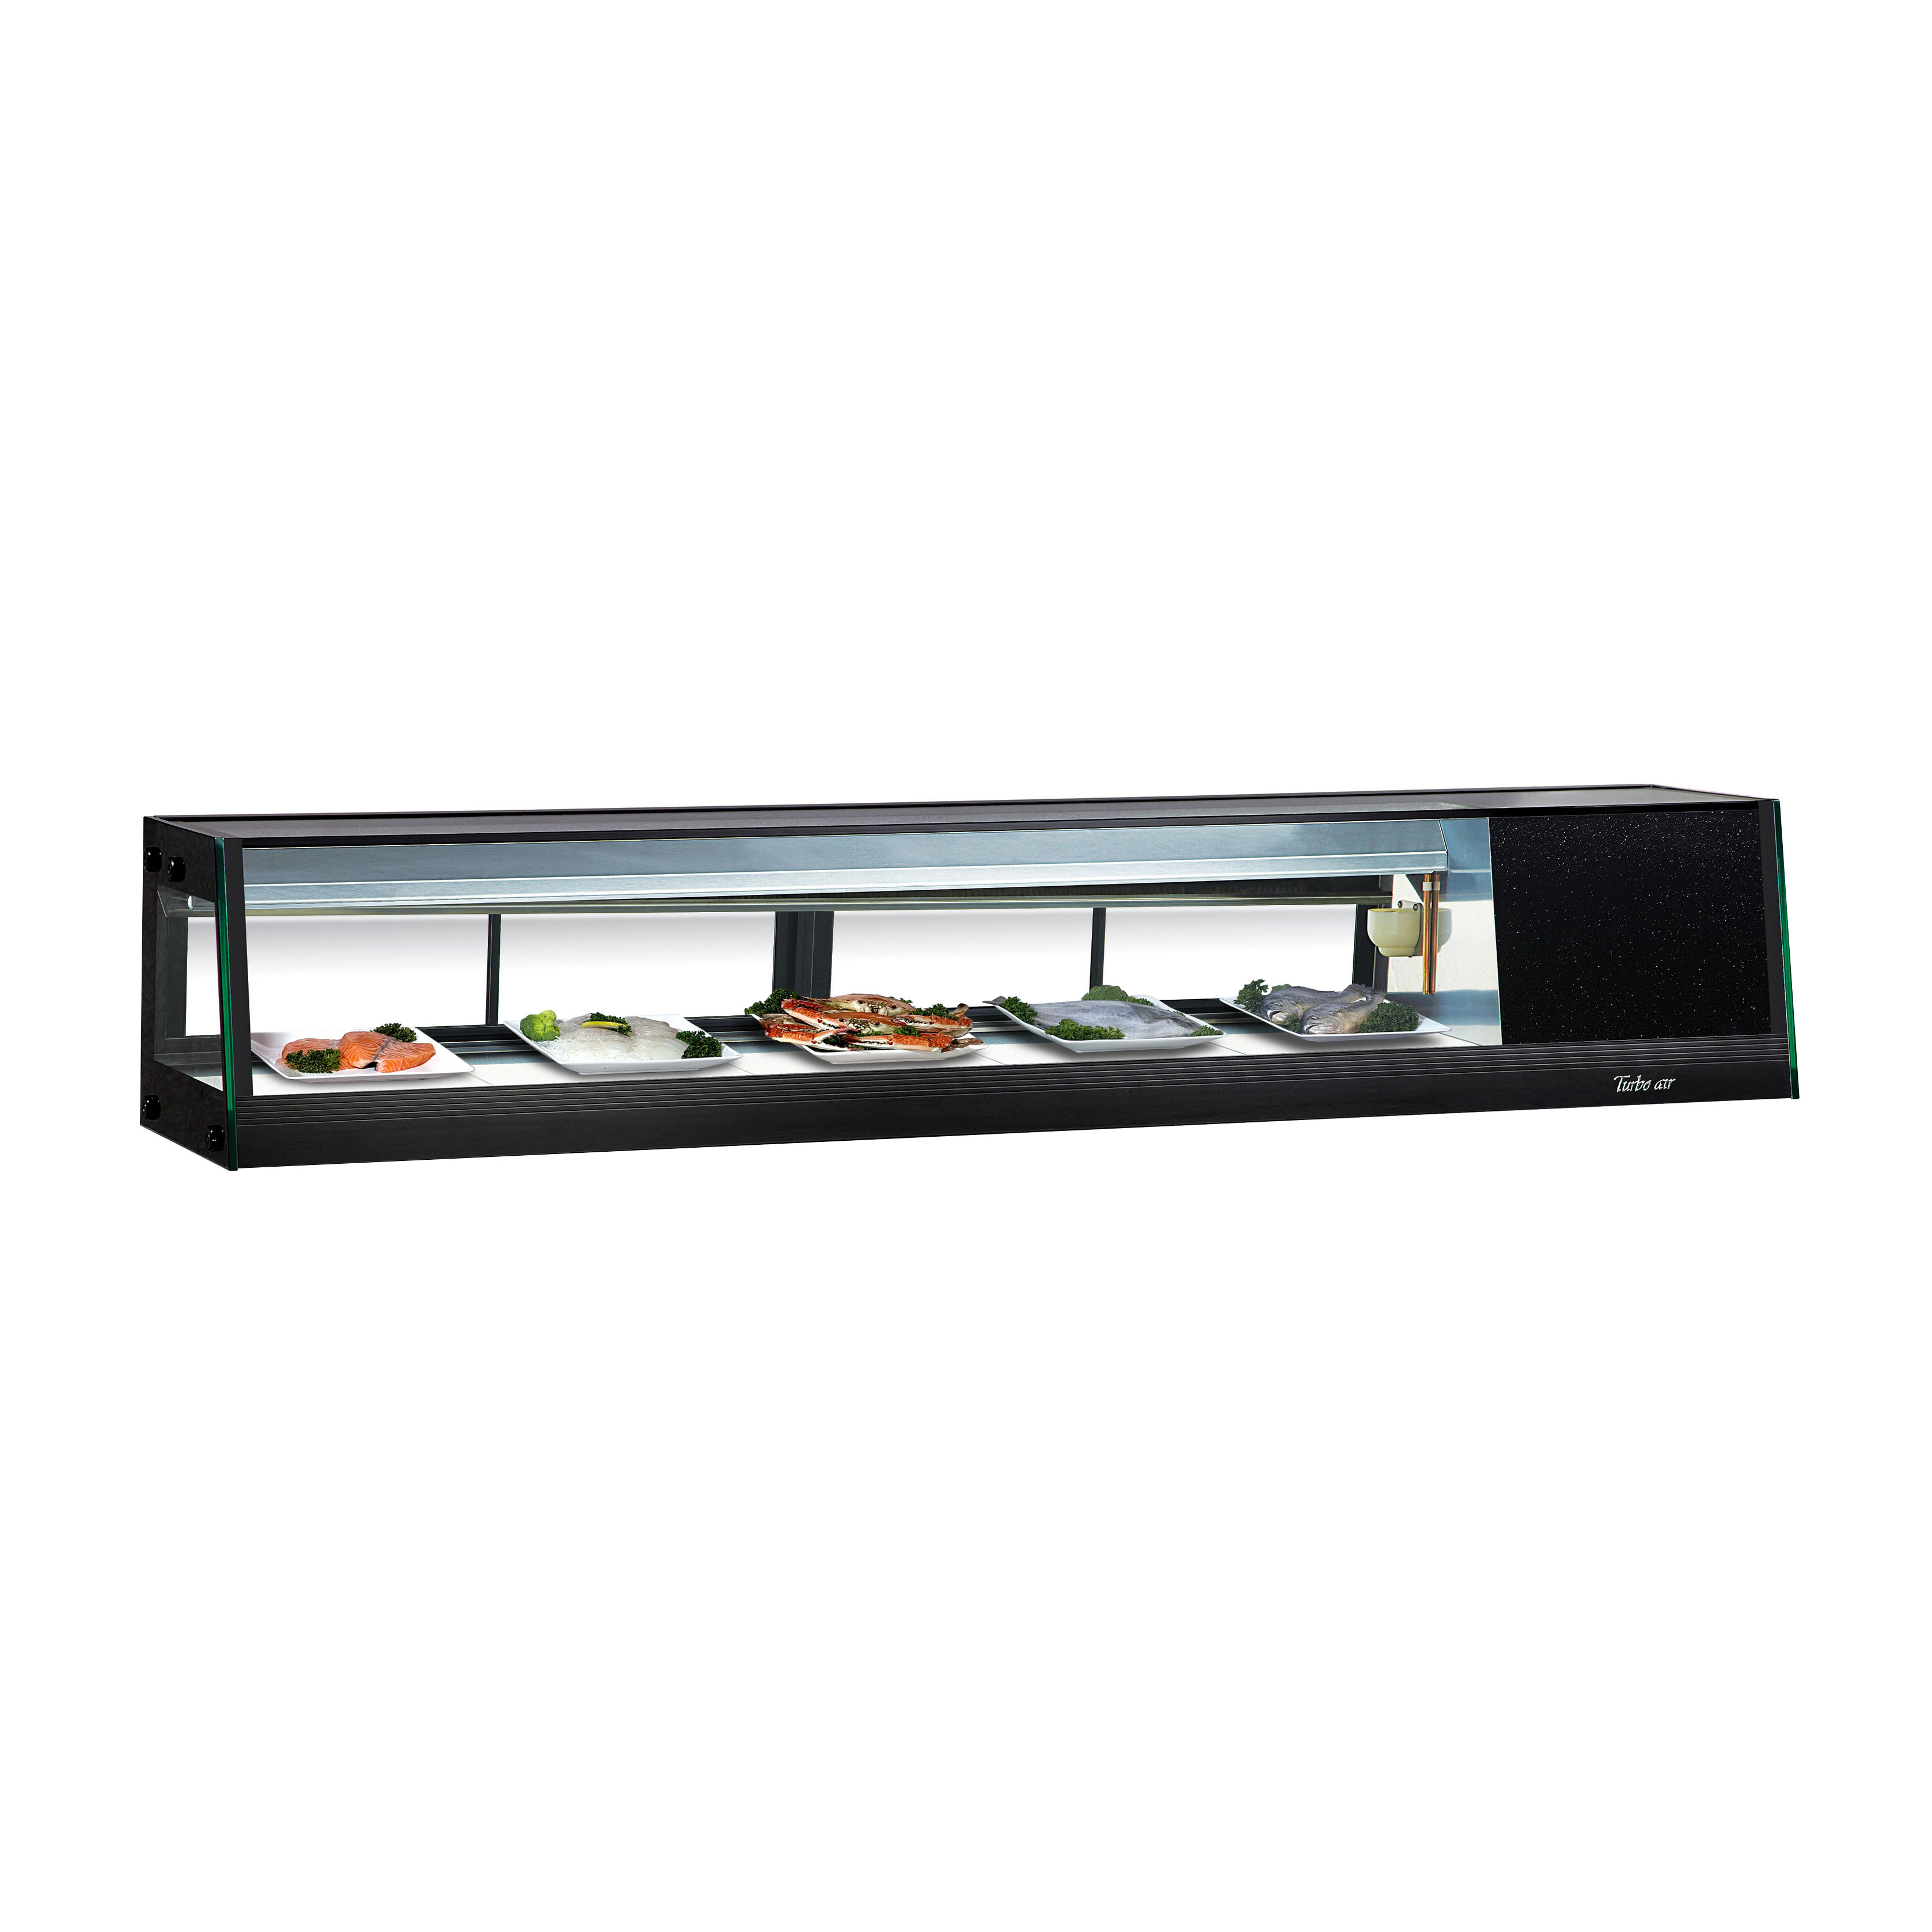 Turbo Air SAS-70R(L)-N display case, refrigerated sushi